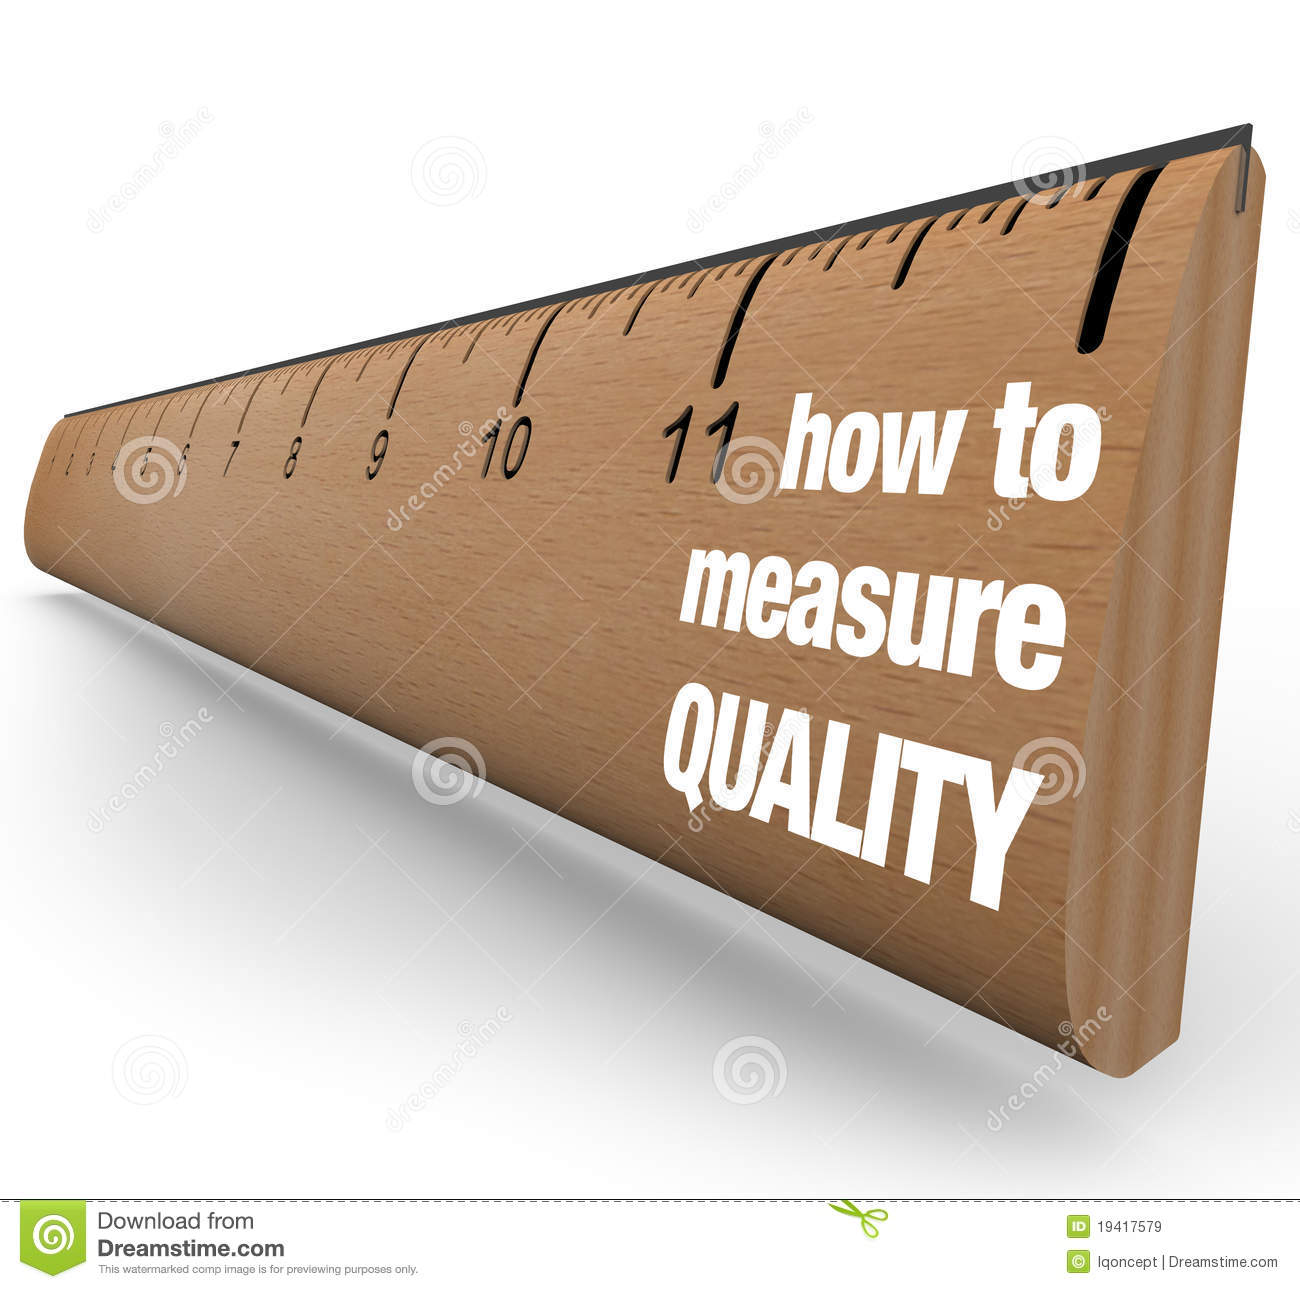 quality measure Explore the ways unm health measures quality and patient outcomes.